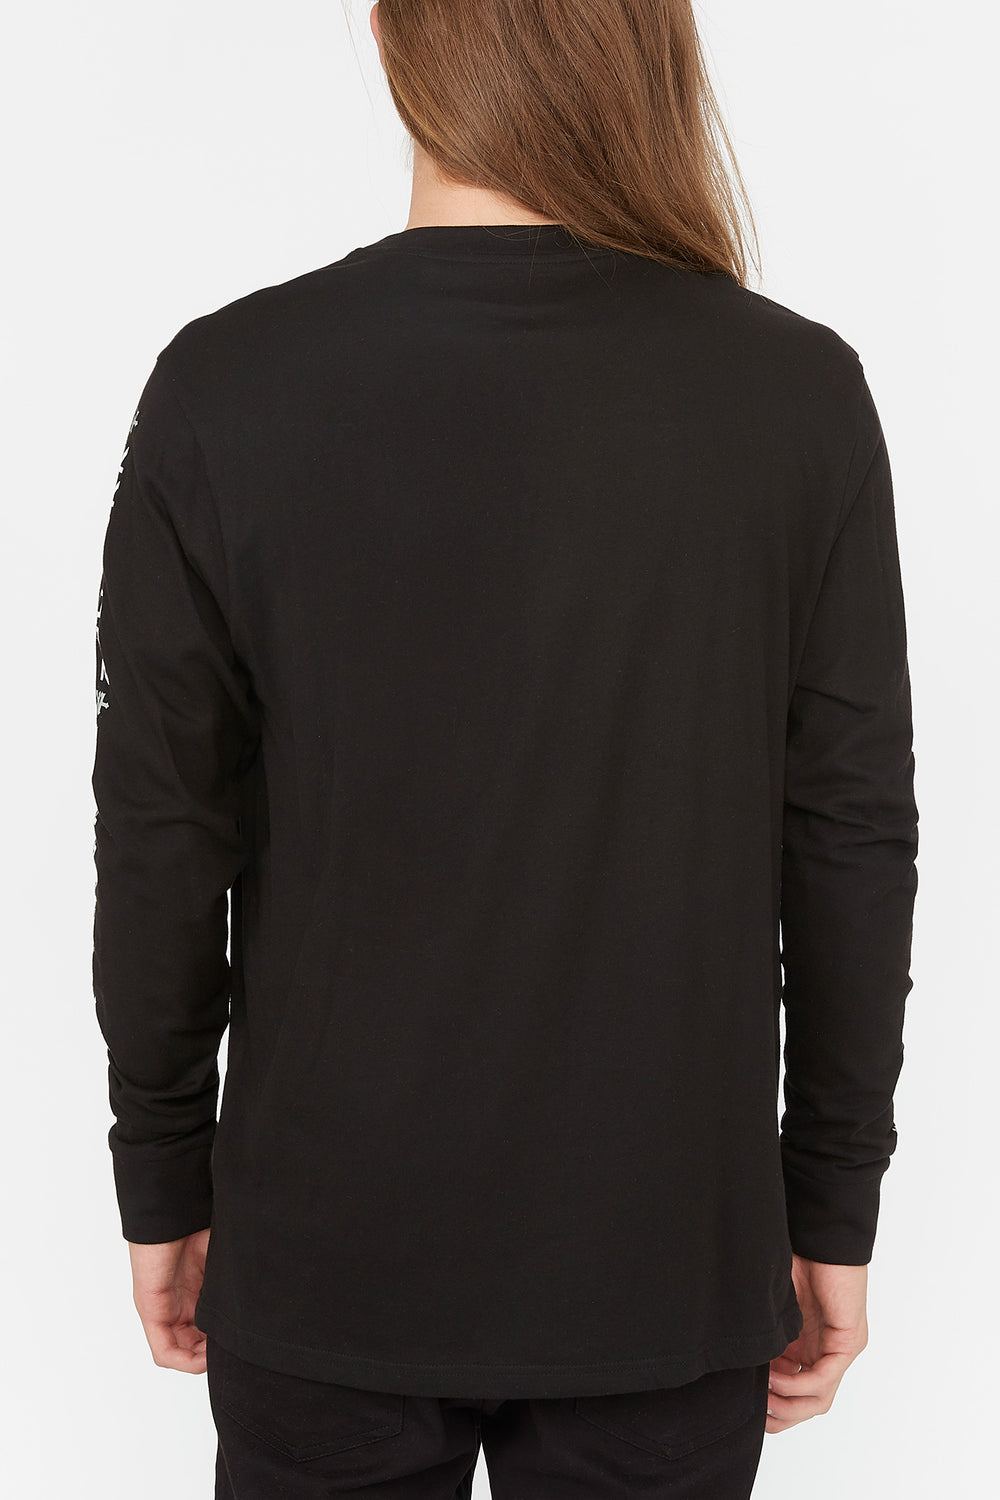 Zoo York Mens Box Logo Long Sleeve Black